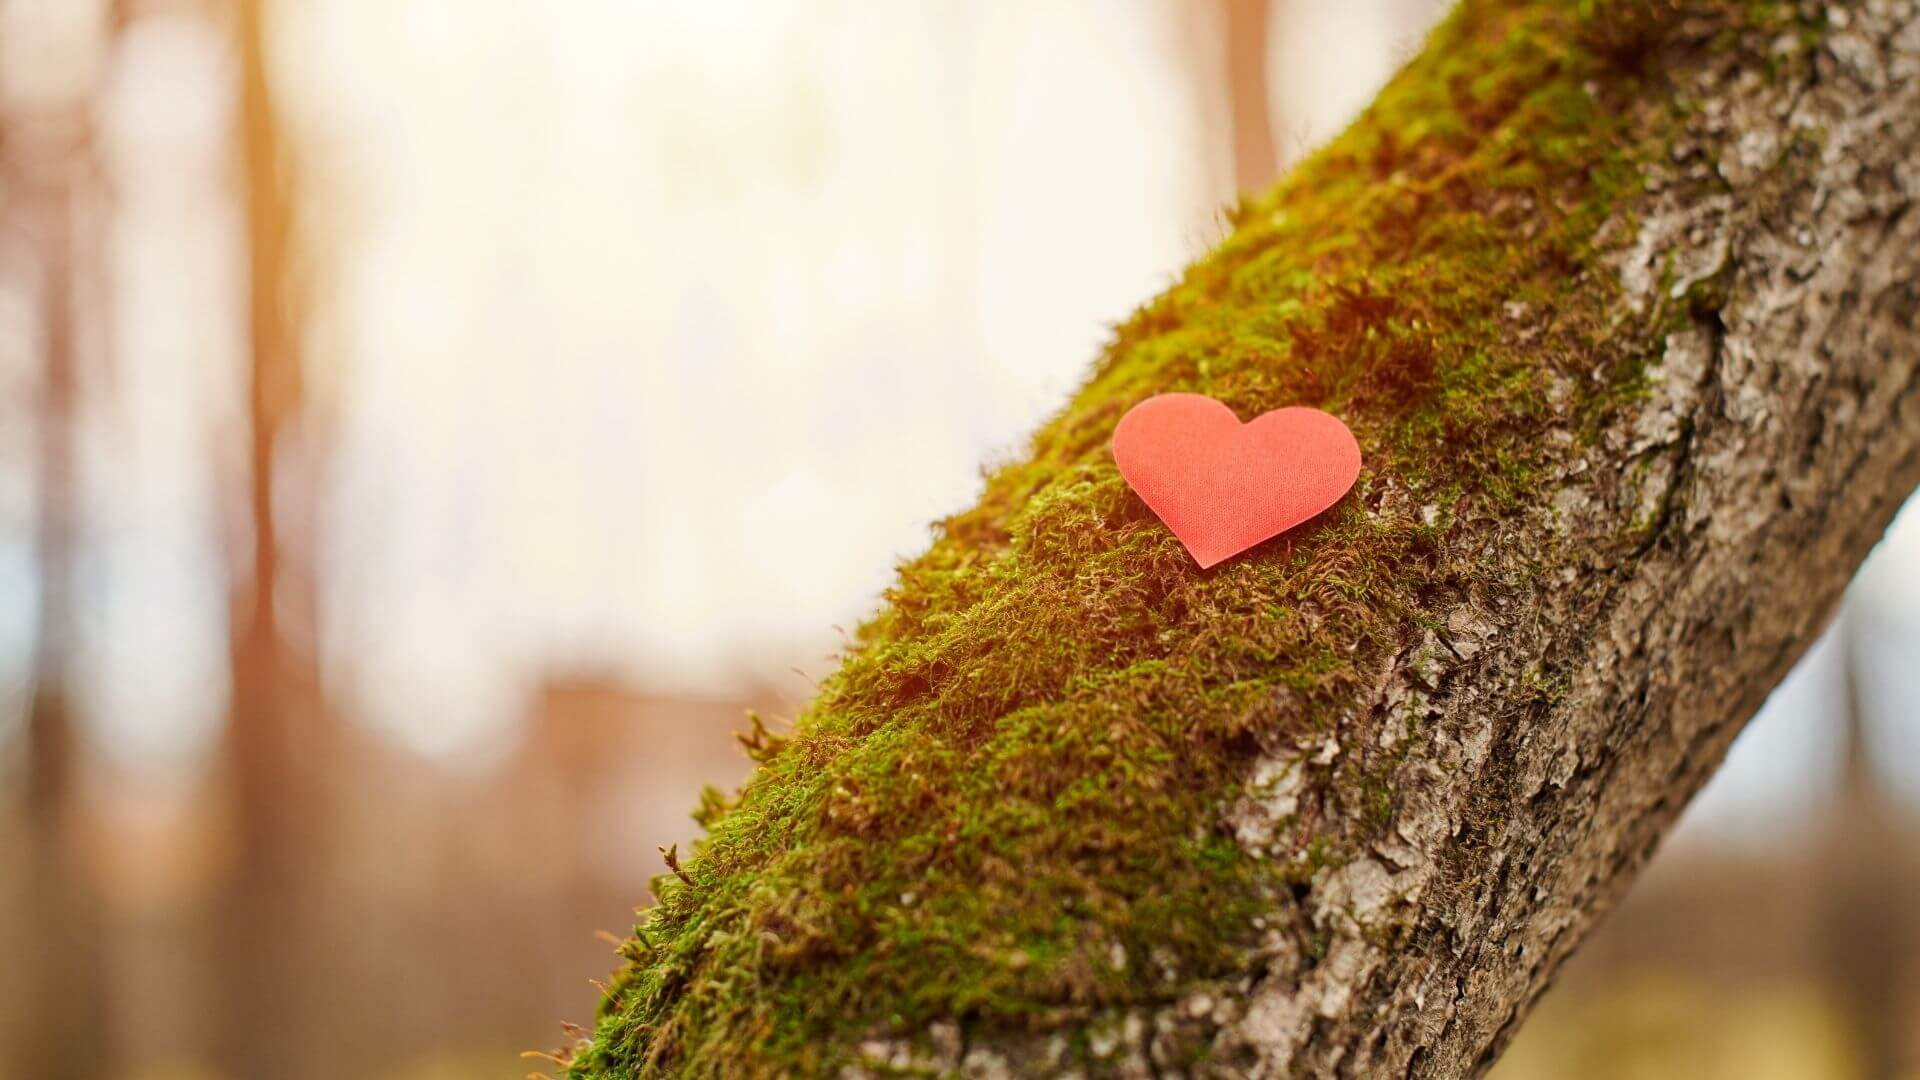 10 earth-conscious Valentine's gifts you can buy on a budget